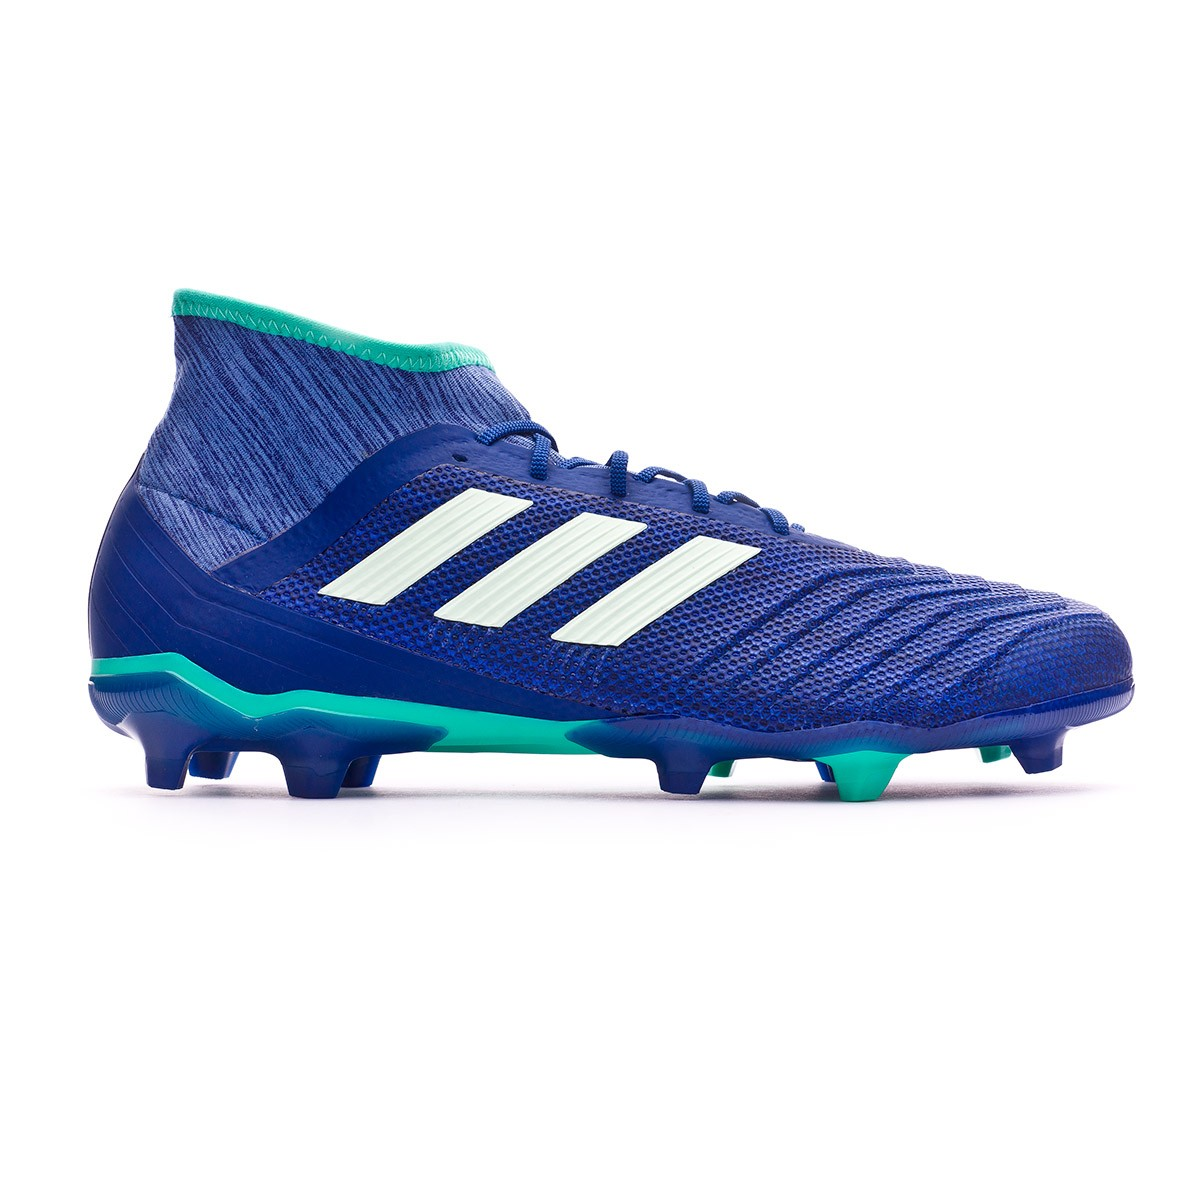 5ce6d186a9c9 Football Boots adidas Predator 18.2 FG Unity ink-Aero green-Hi-res green - Football  store Fútbol Emotion